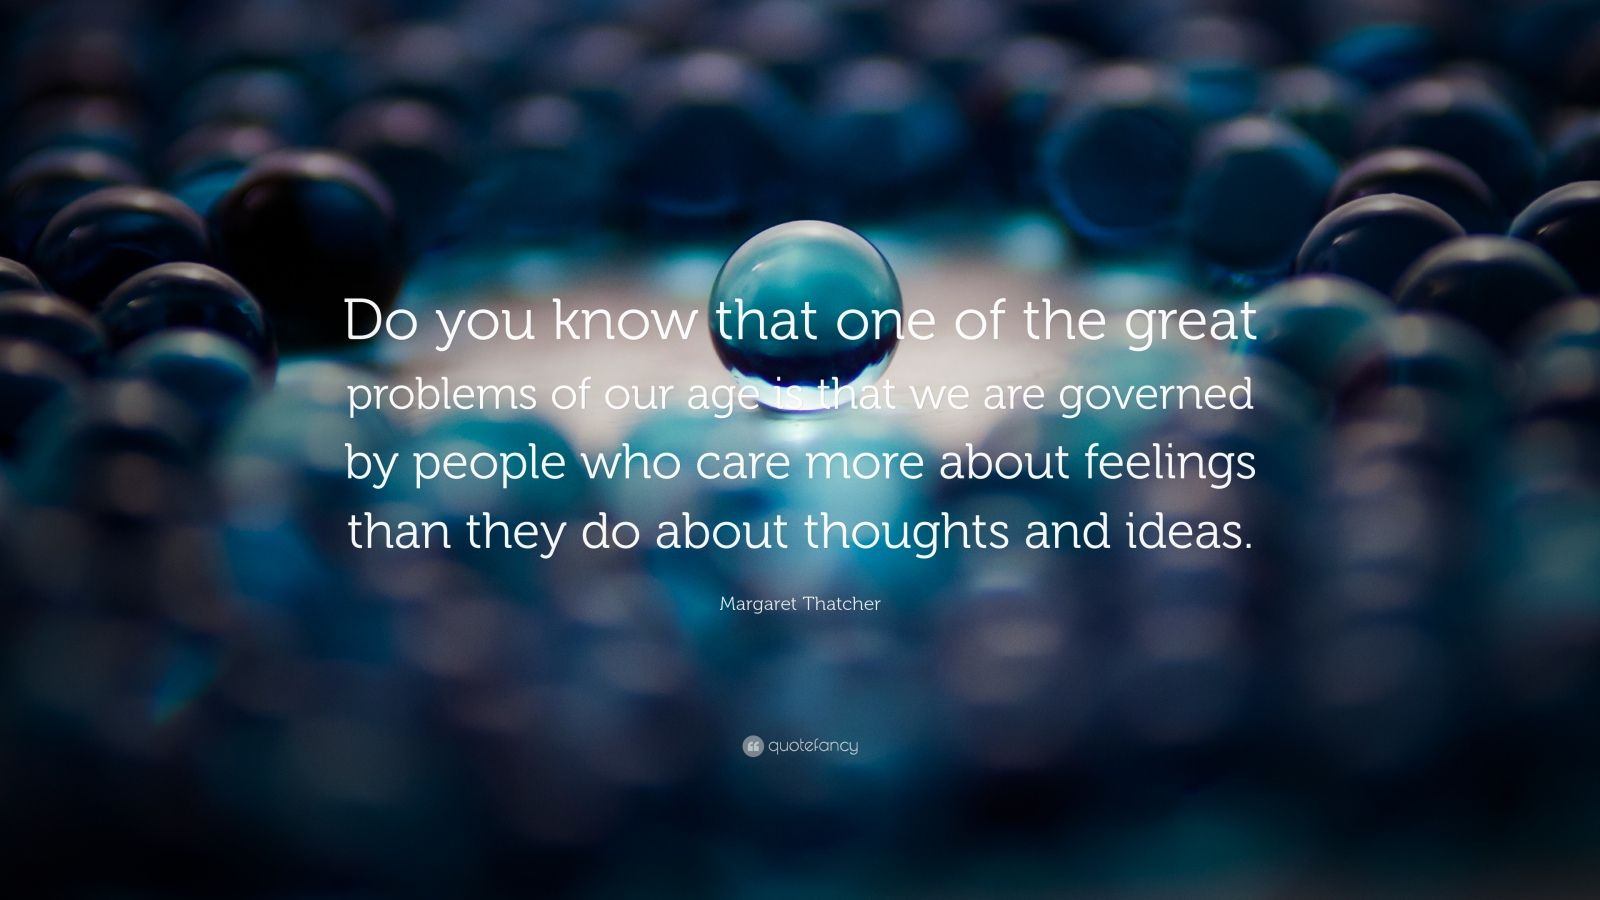 """Margaret Thatcher Quote: """"Do you know that one of the great problems of our age is that we are governed by people who care more about feelings than they do about thoughts and ideas."""""""